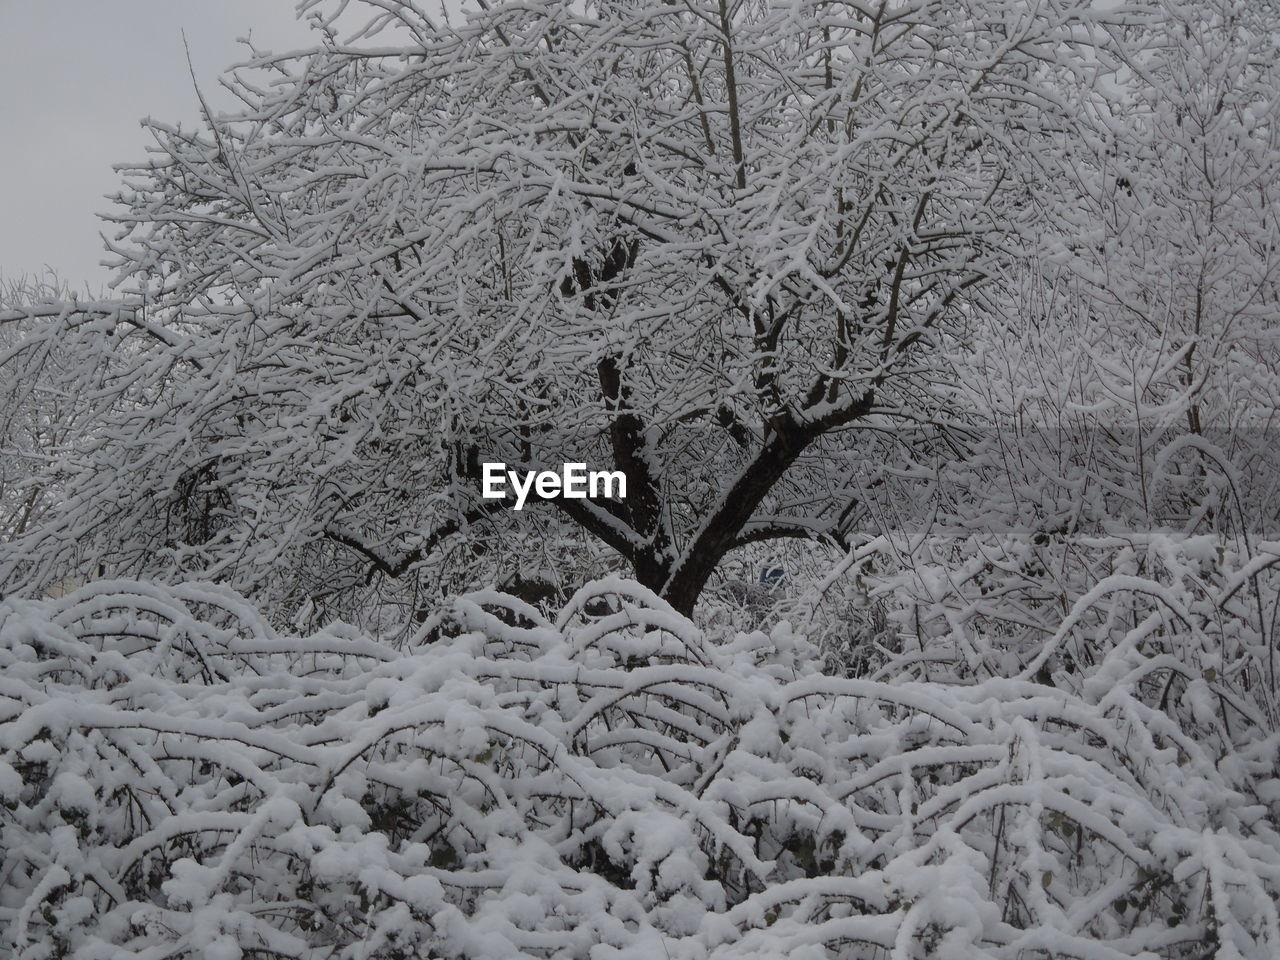 nature, winter, cold temperature, outdoors, no people, tranquility, snow, day, beauty in nature, branch, tree, close-up